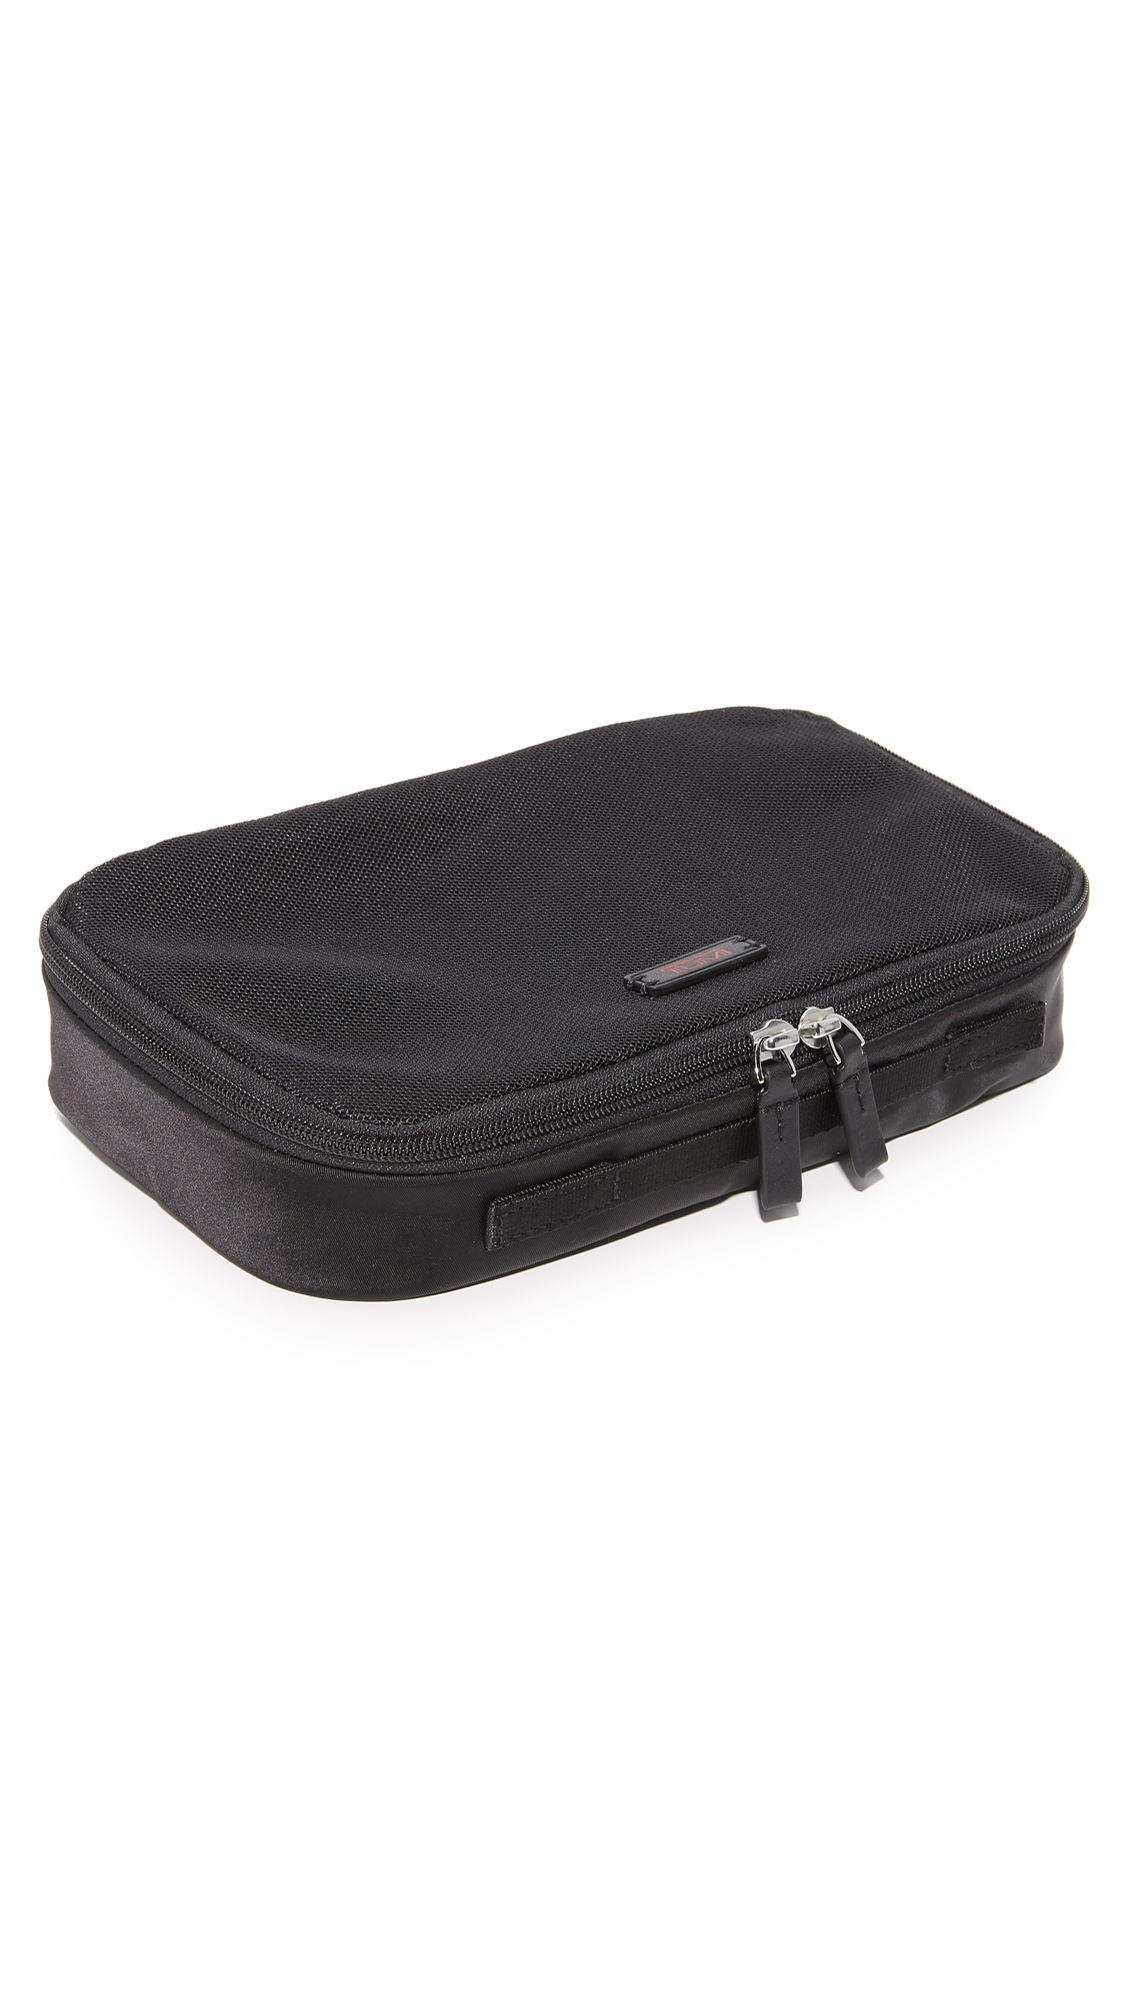 Tumi Packing Cube - Black